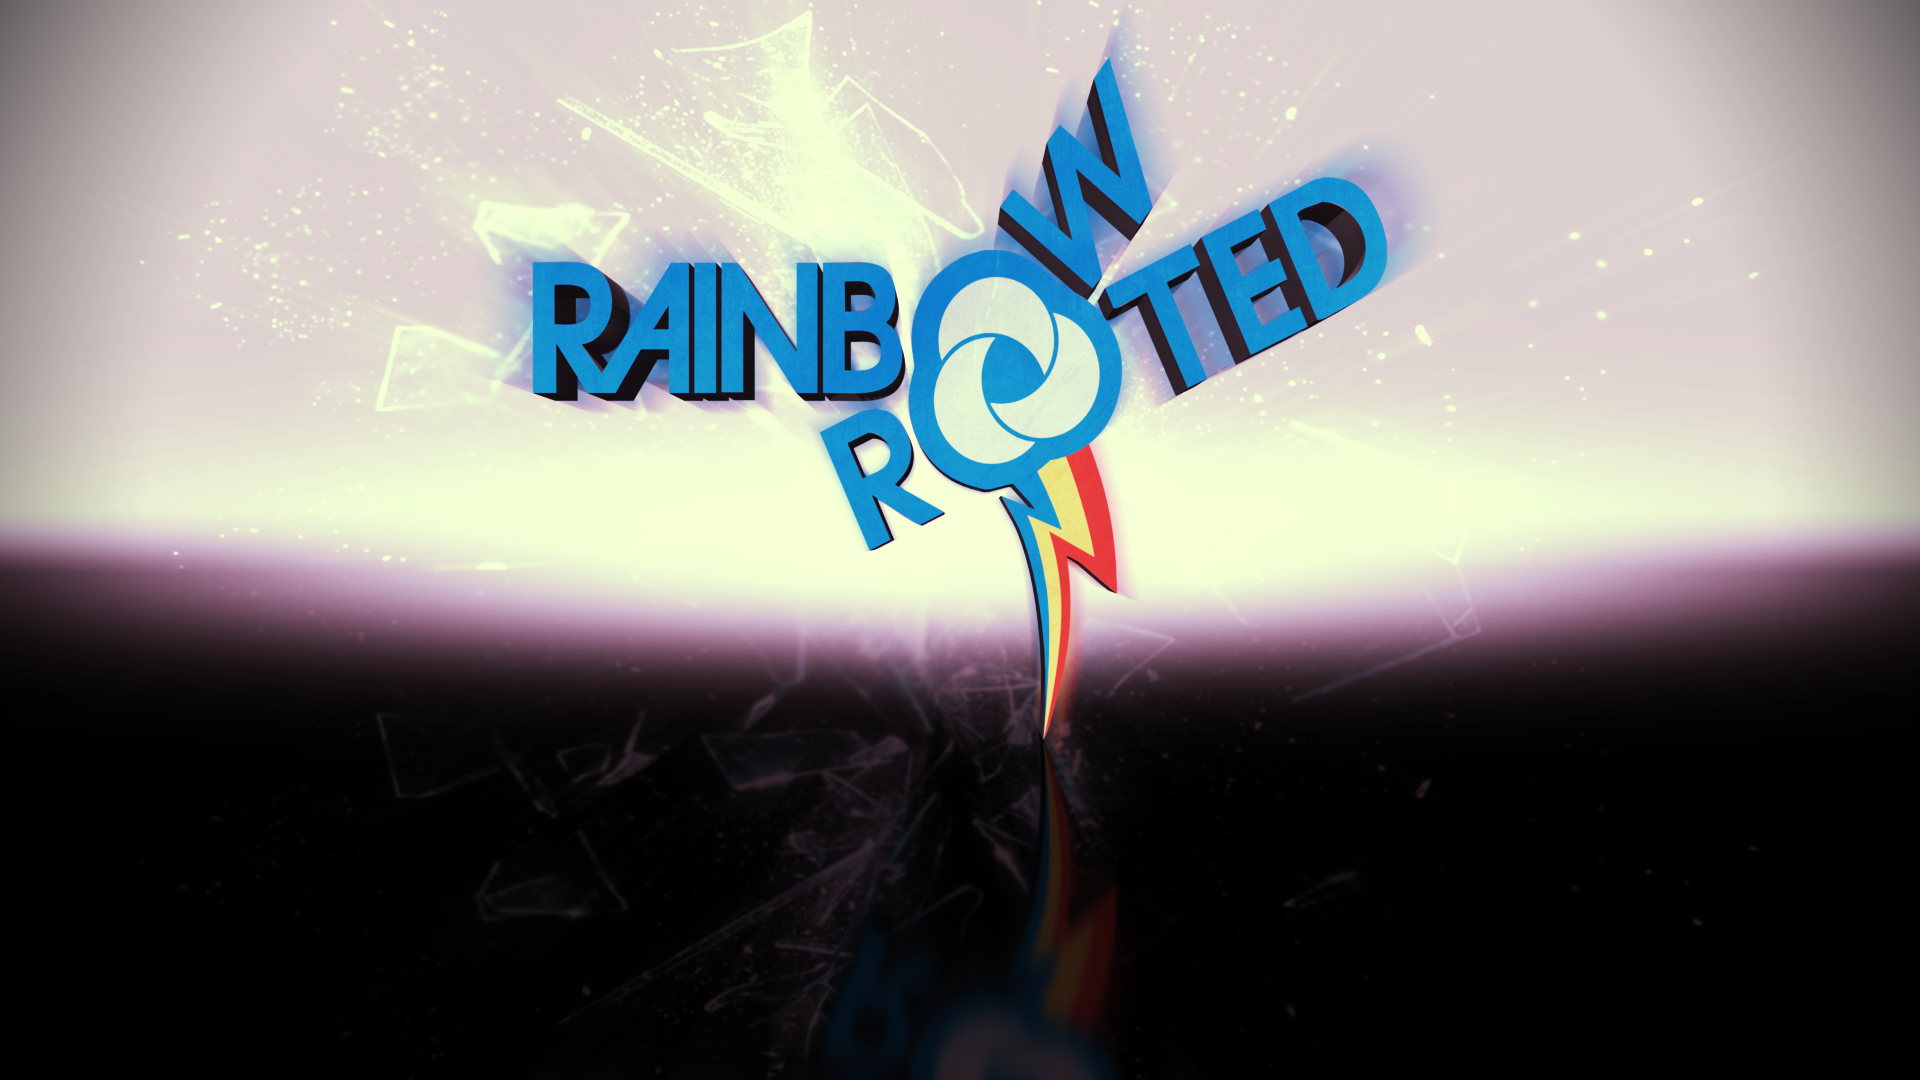 Rainbow and Rooted 3D by BronyYAY123 and WMill